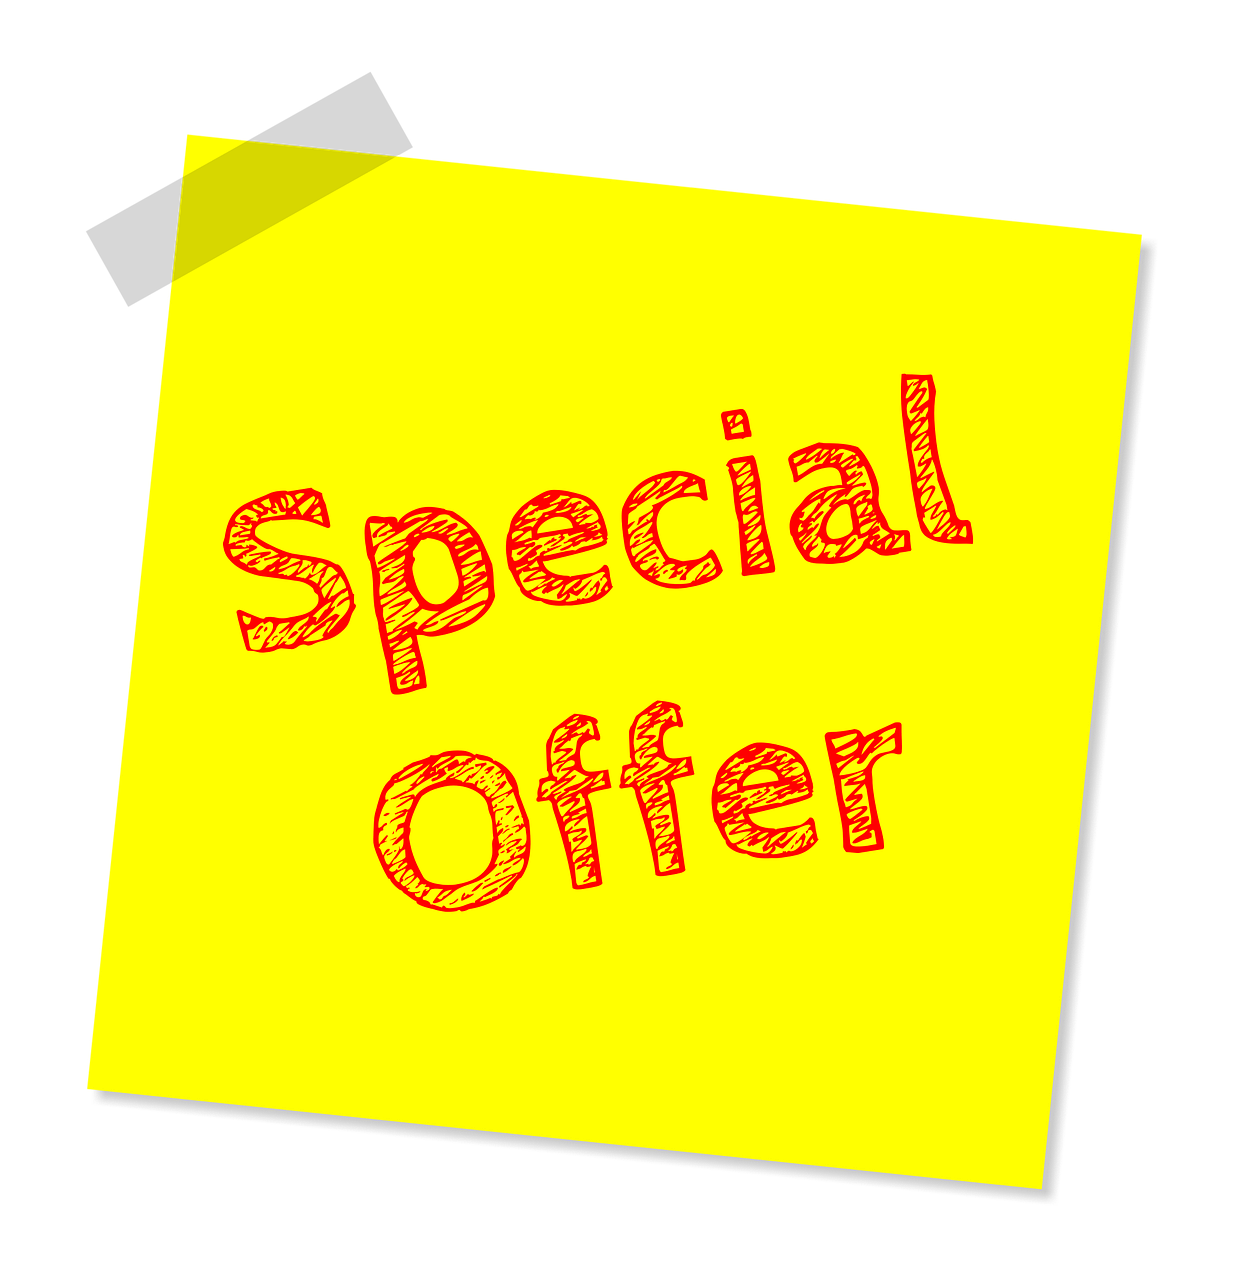 special-offer-1422378-1280.png